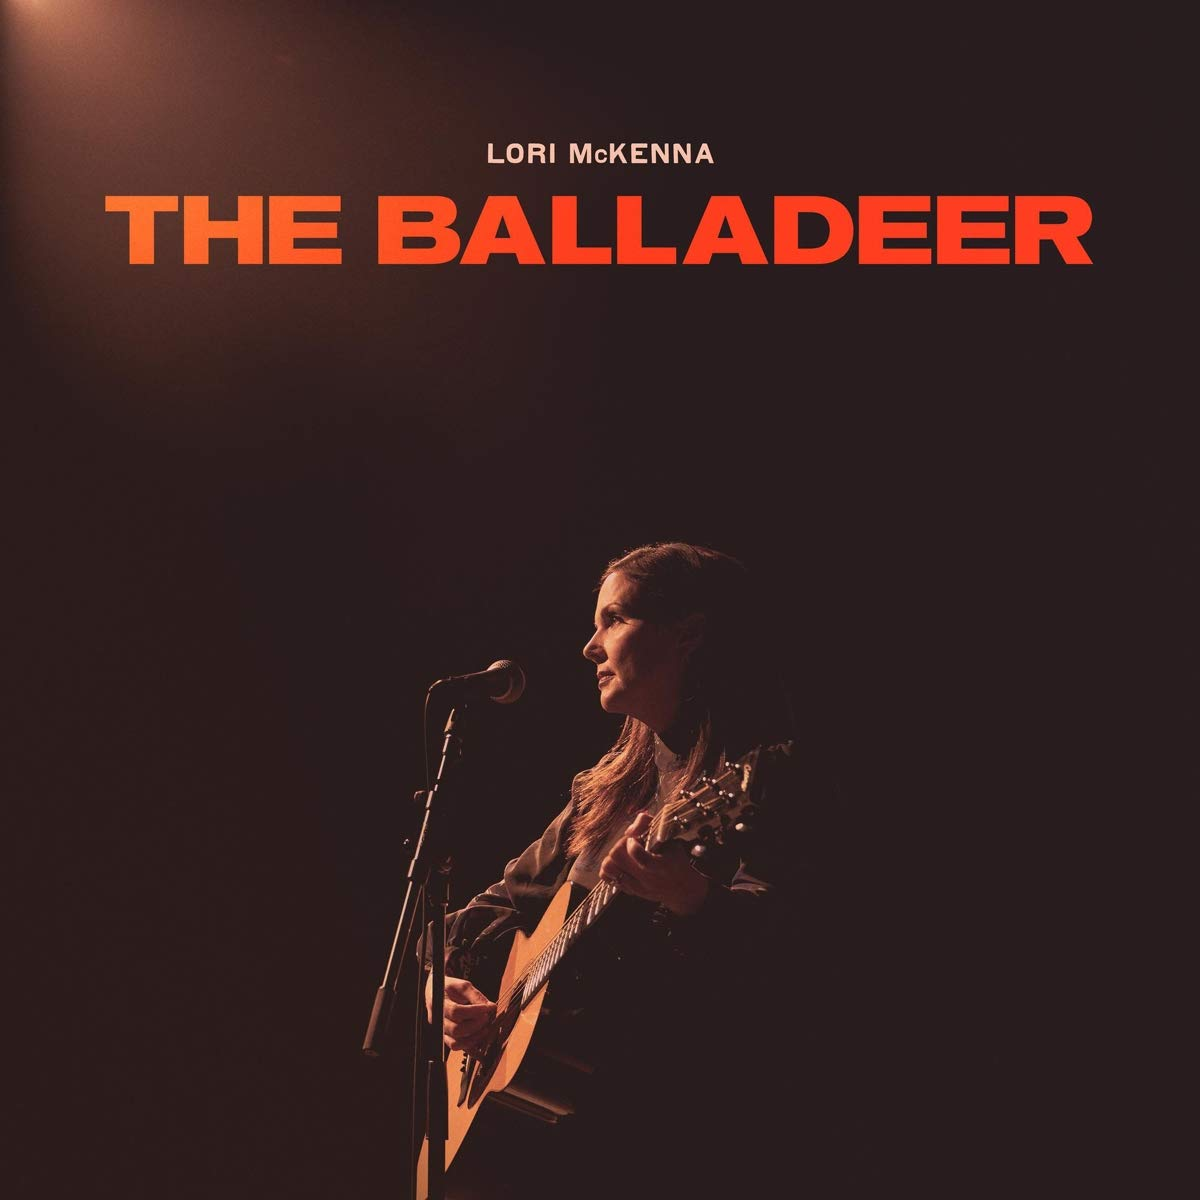 Lori McKenna - The Balladeer - Amazon.com Music